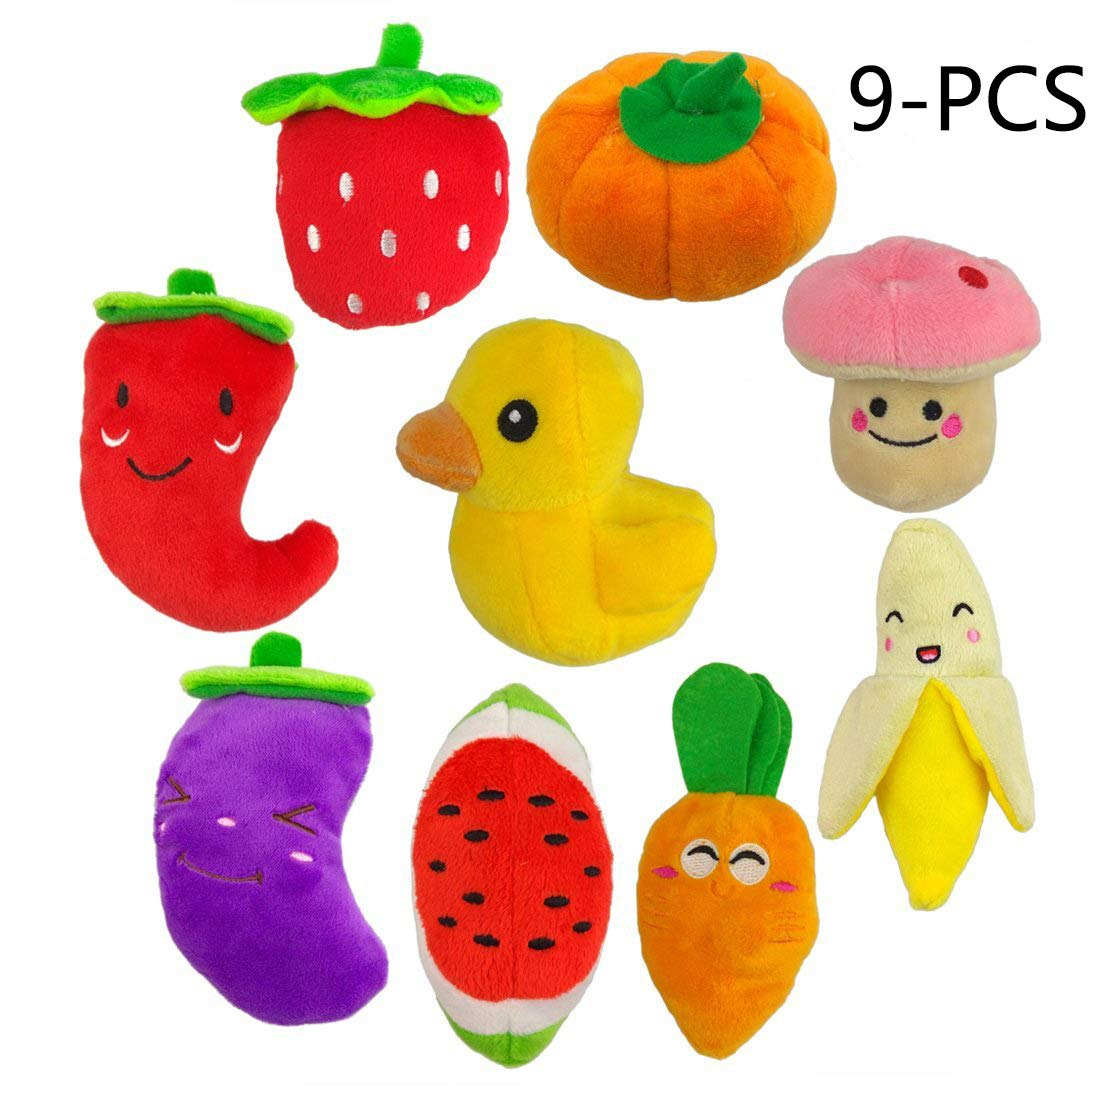 TuhooMall 12-15cm/ 4.7-6 Inch Squeaky Fruits and Vegetables Plush Puppy Dog Toys for Small Dogs by TuhooMall